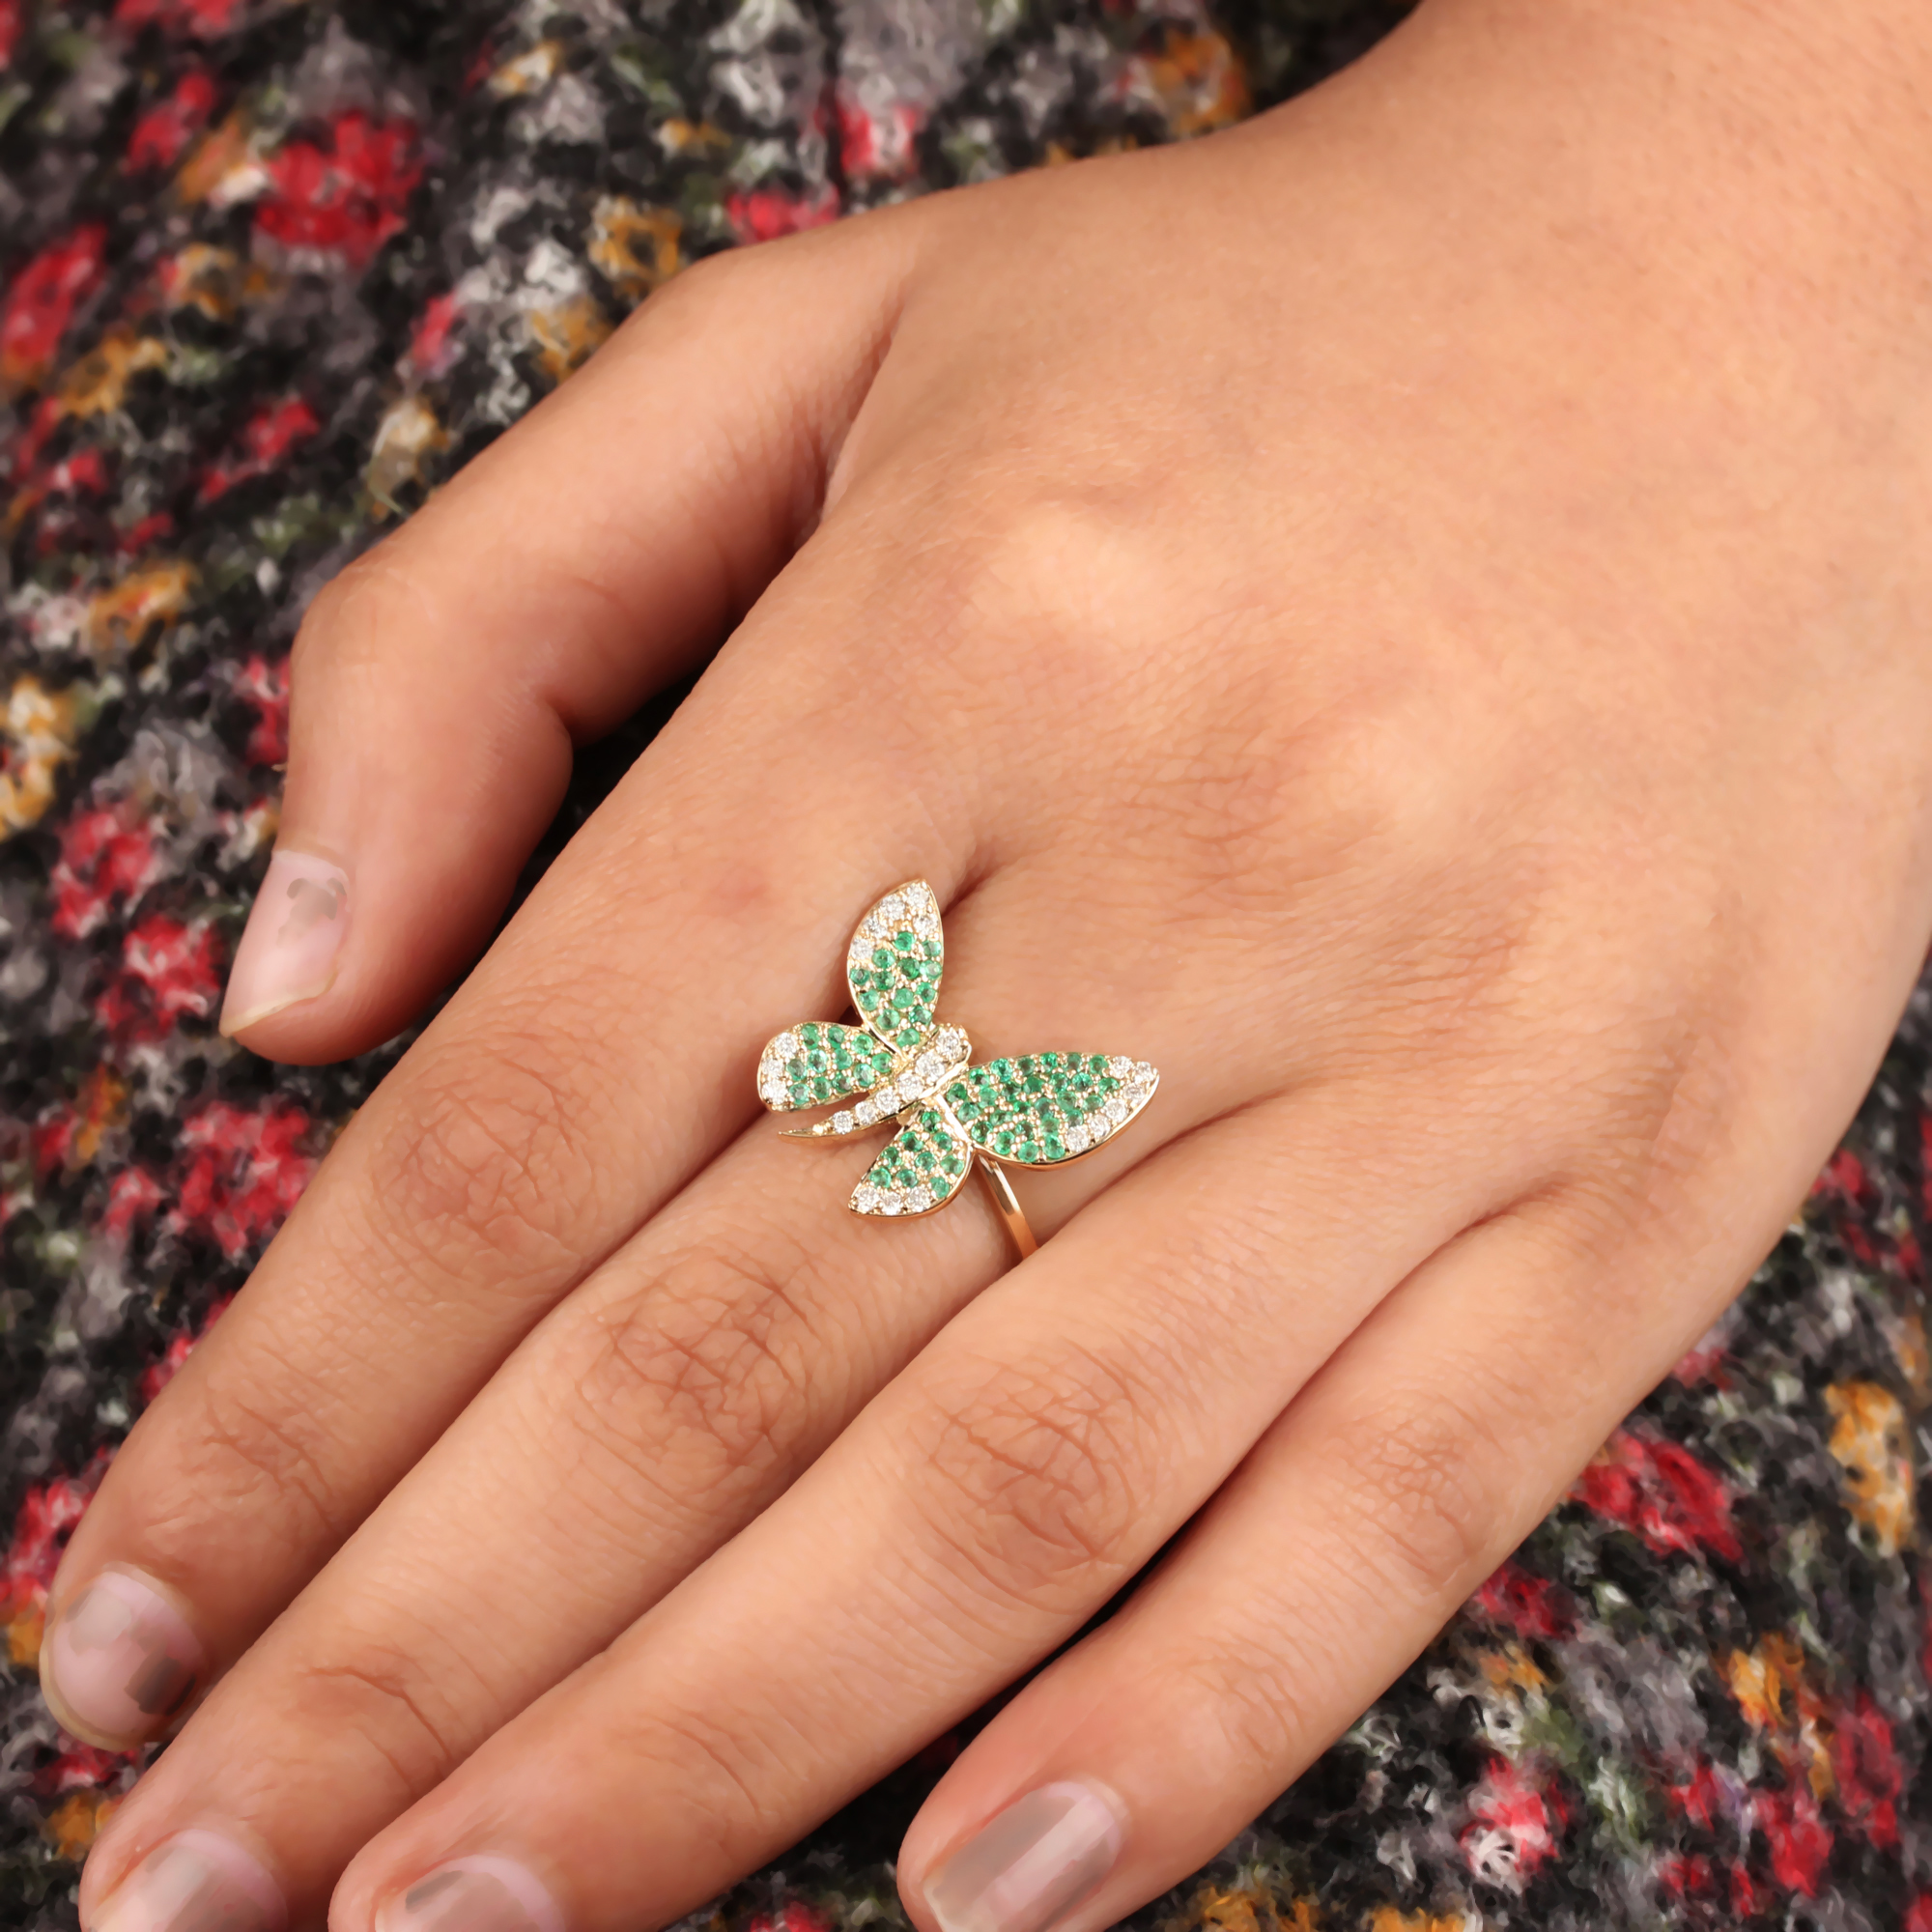 Emerald Gemstone Ring Butterfly Ring 14K Solid Gold Pave Diamond Jewelry